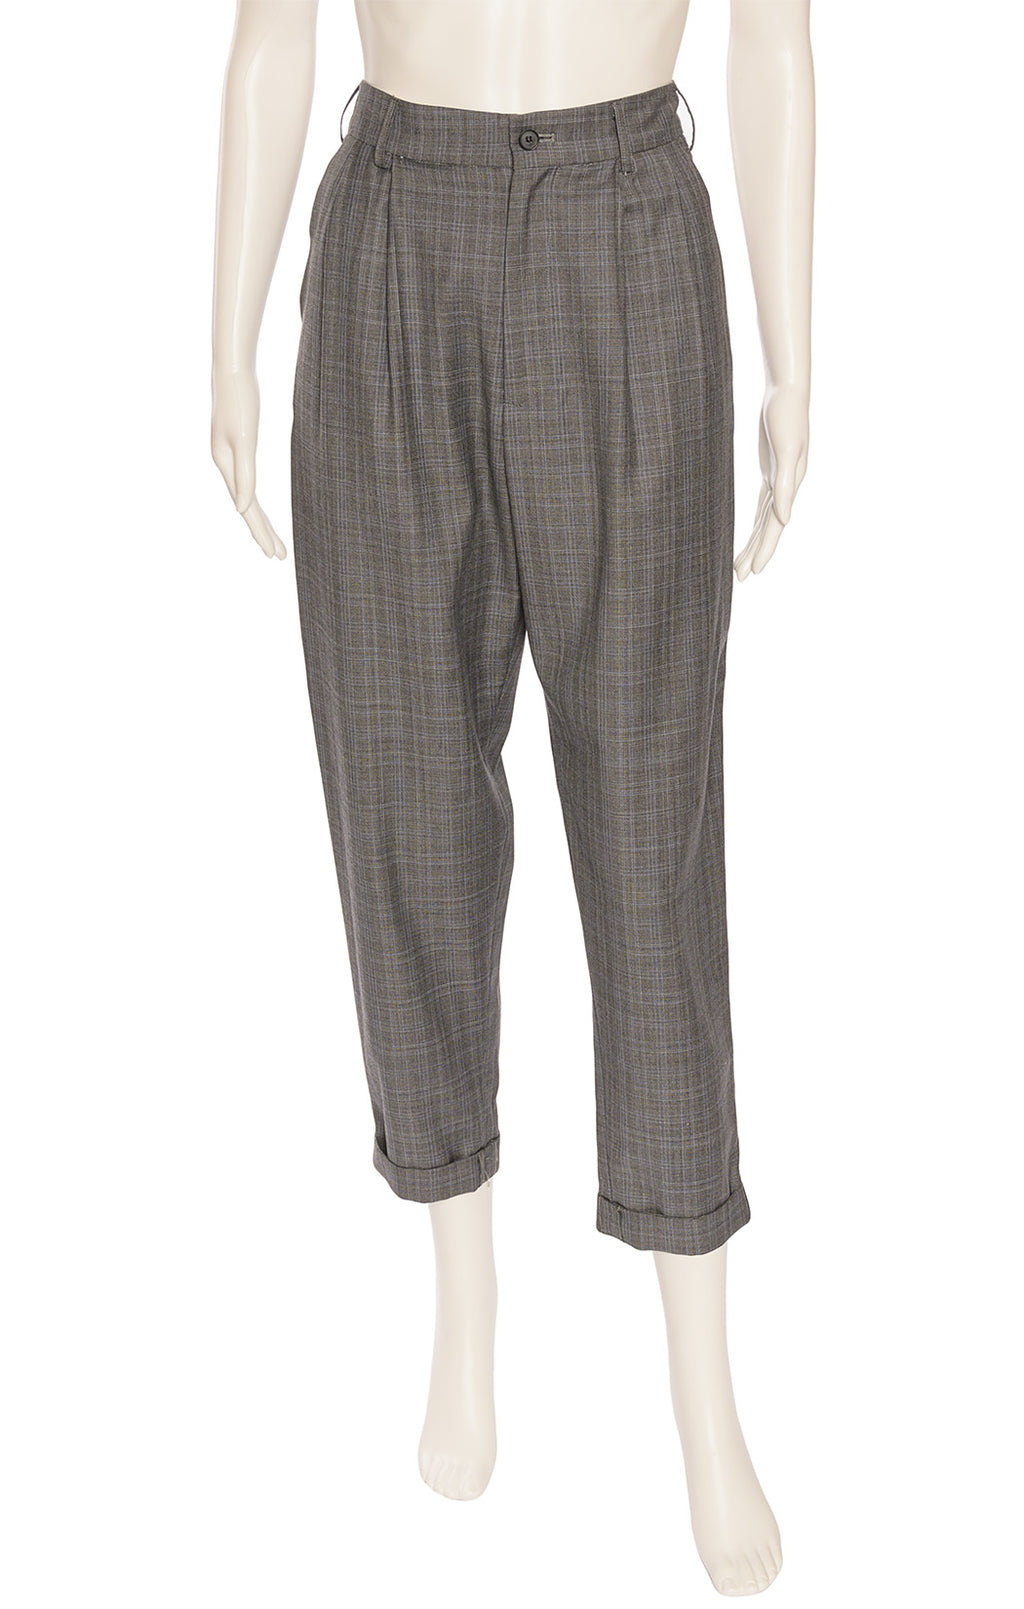 Gray plaid trouser style pant with cuffs, front zipper, belt loops and side and back pockets